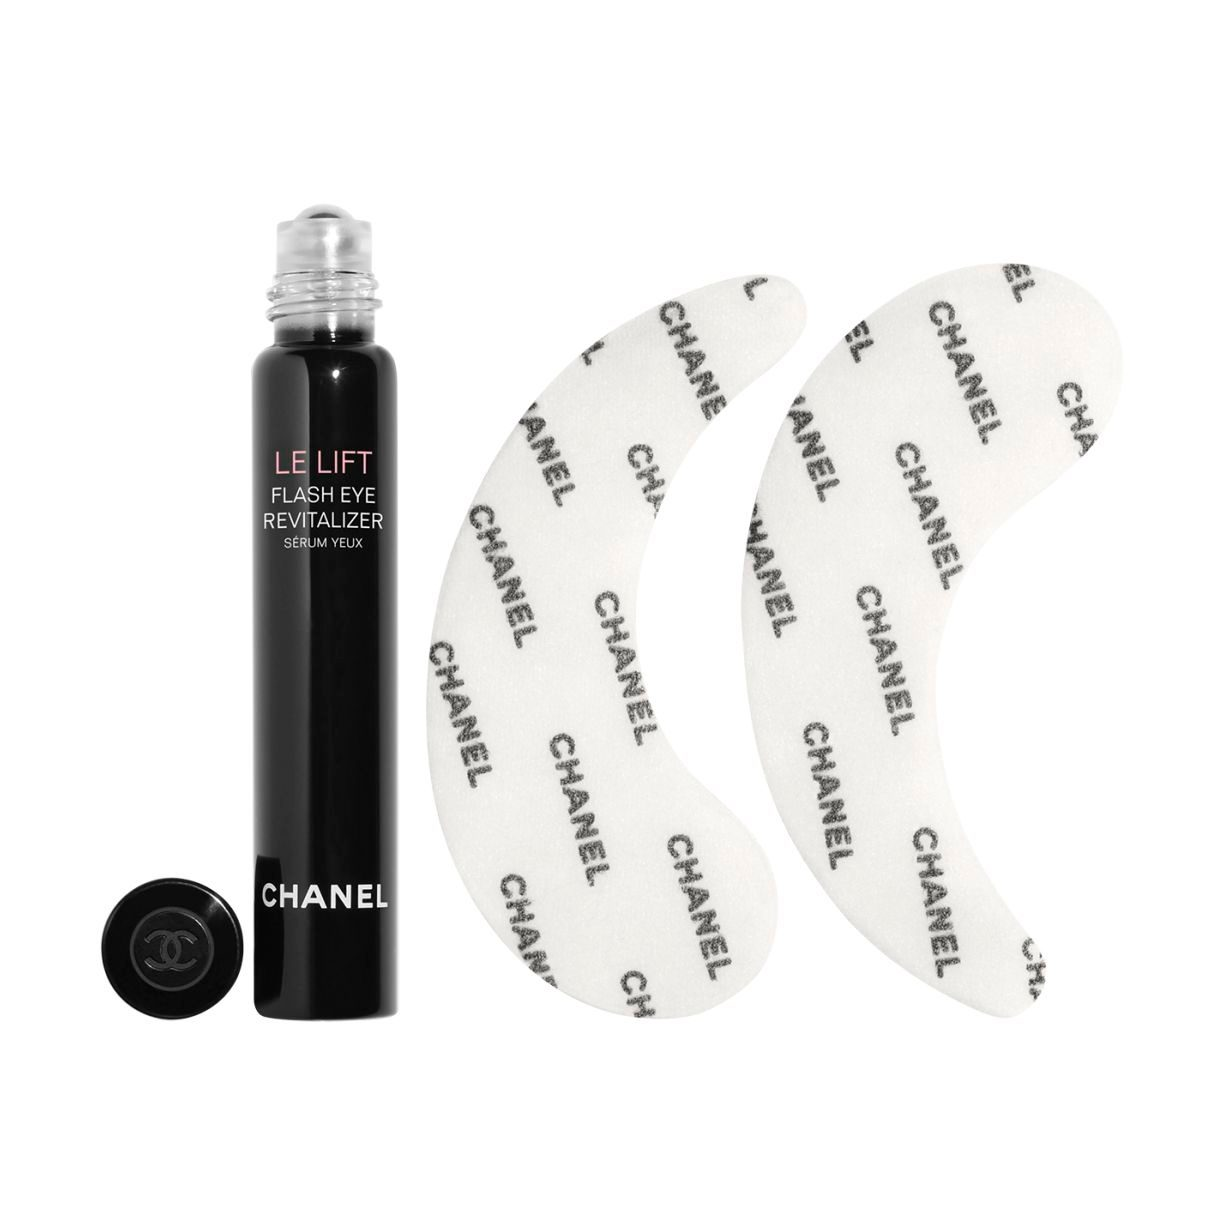 LE LIFT RASSODANTE - ANTIRUGHE FLASH EYE REVITALIZER